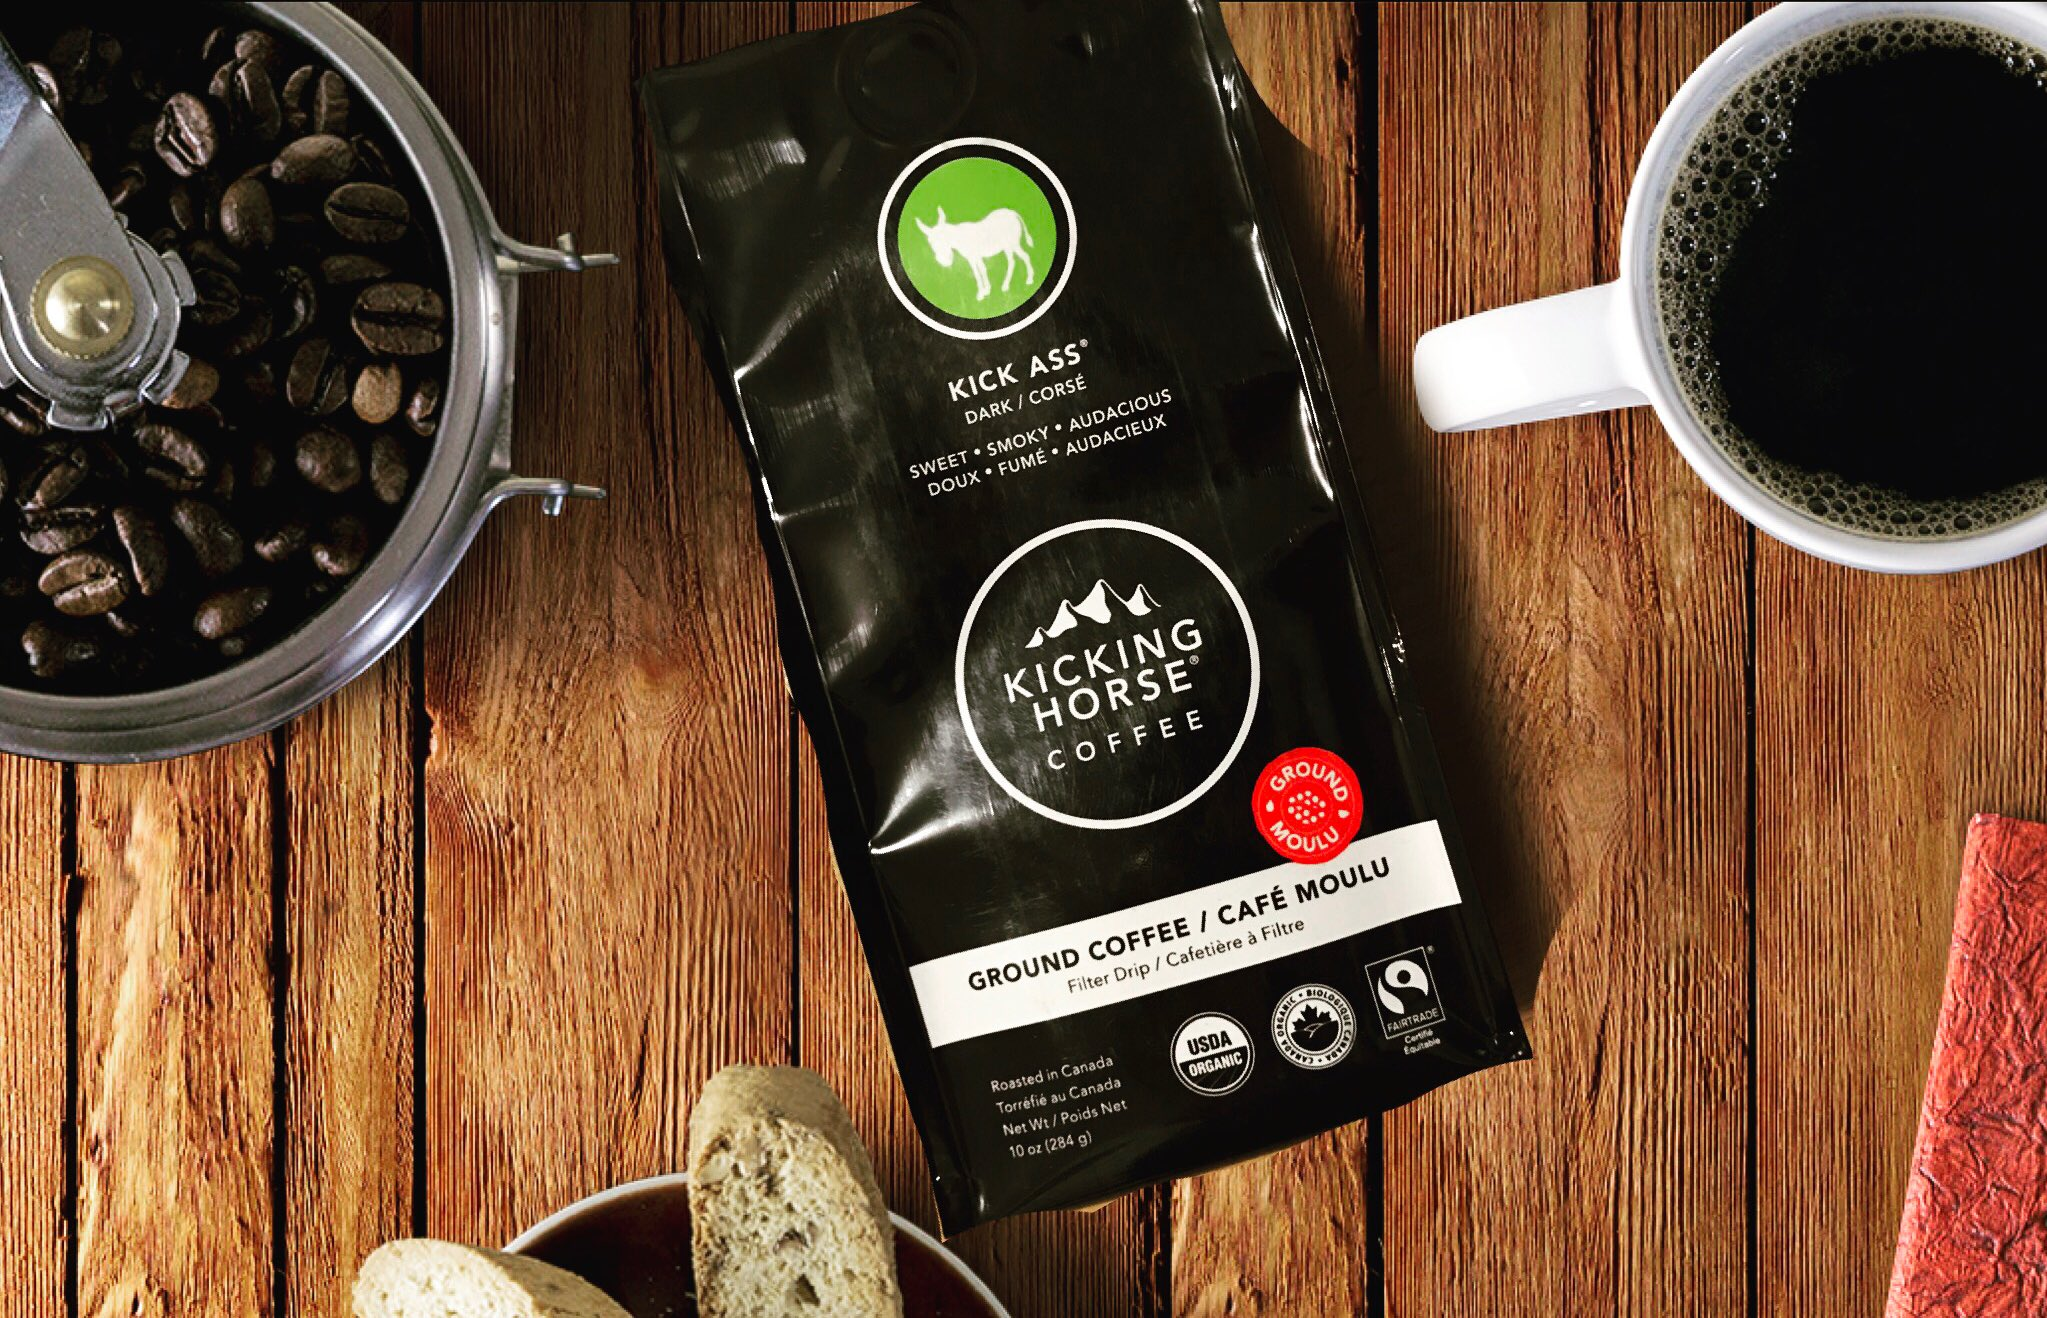 kicking horse coffee,